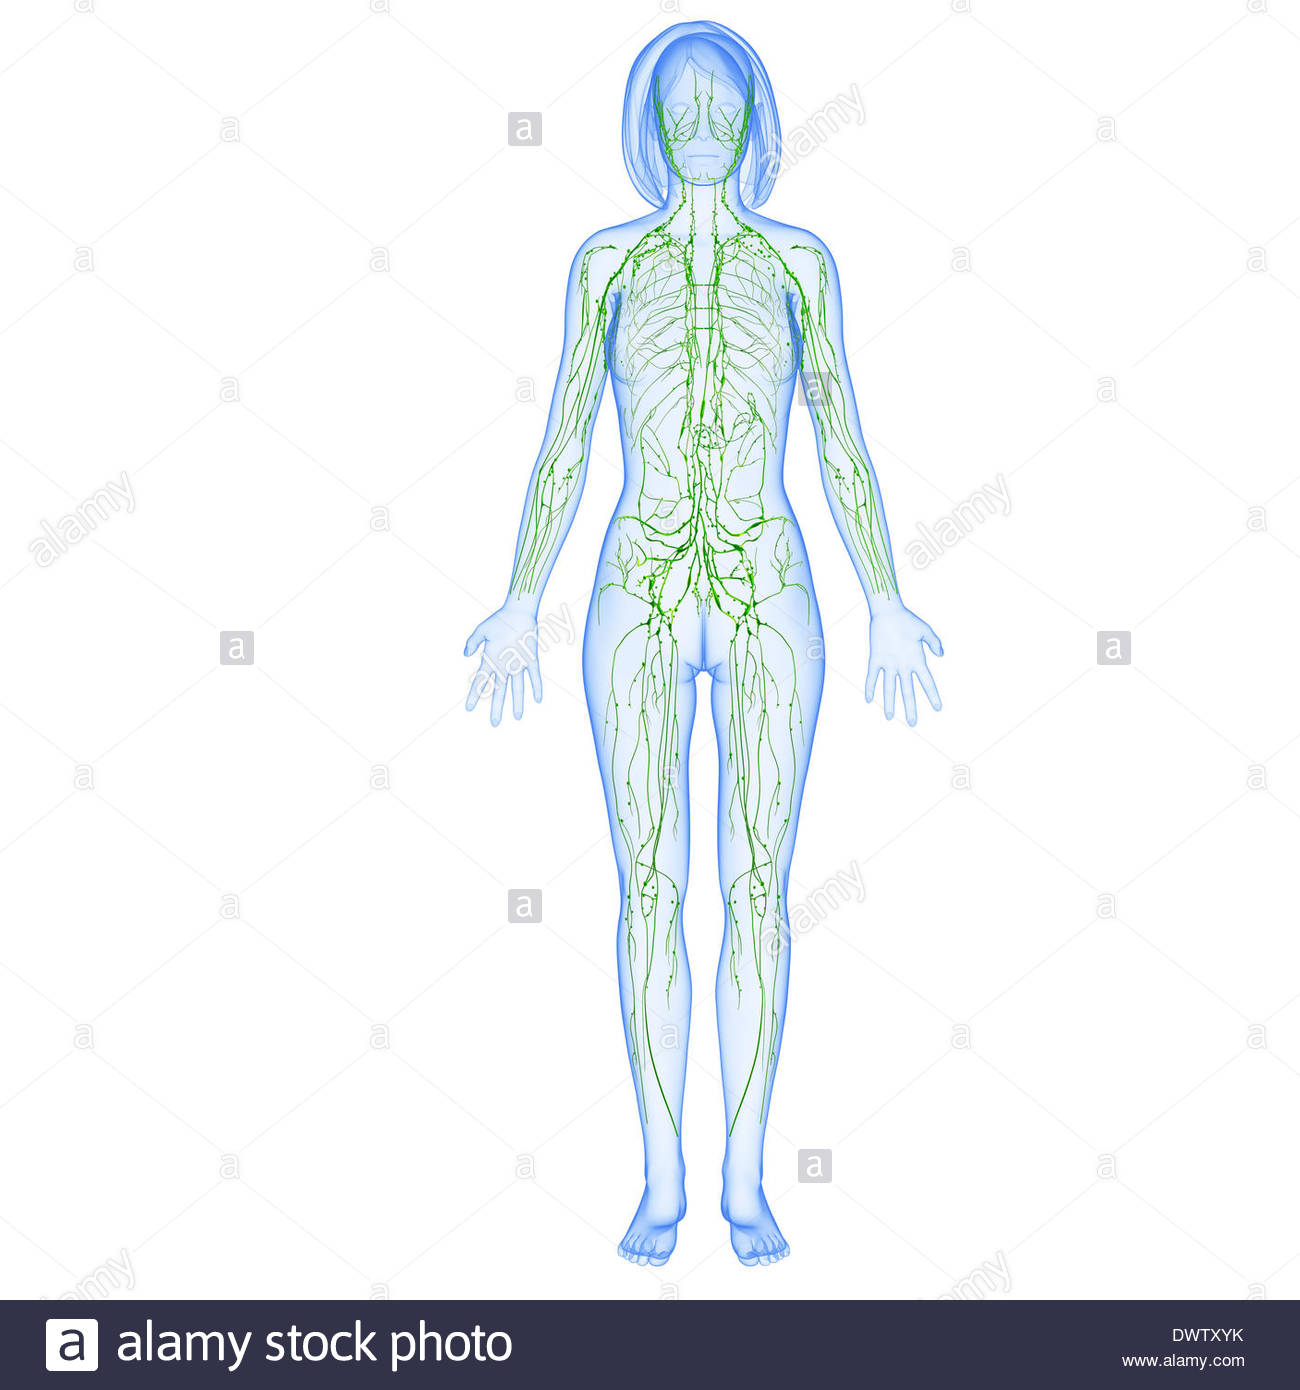 1300x1390 Lymphatic System Drawing Stock Photo 67545511